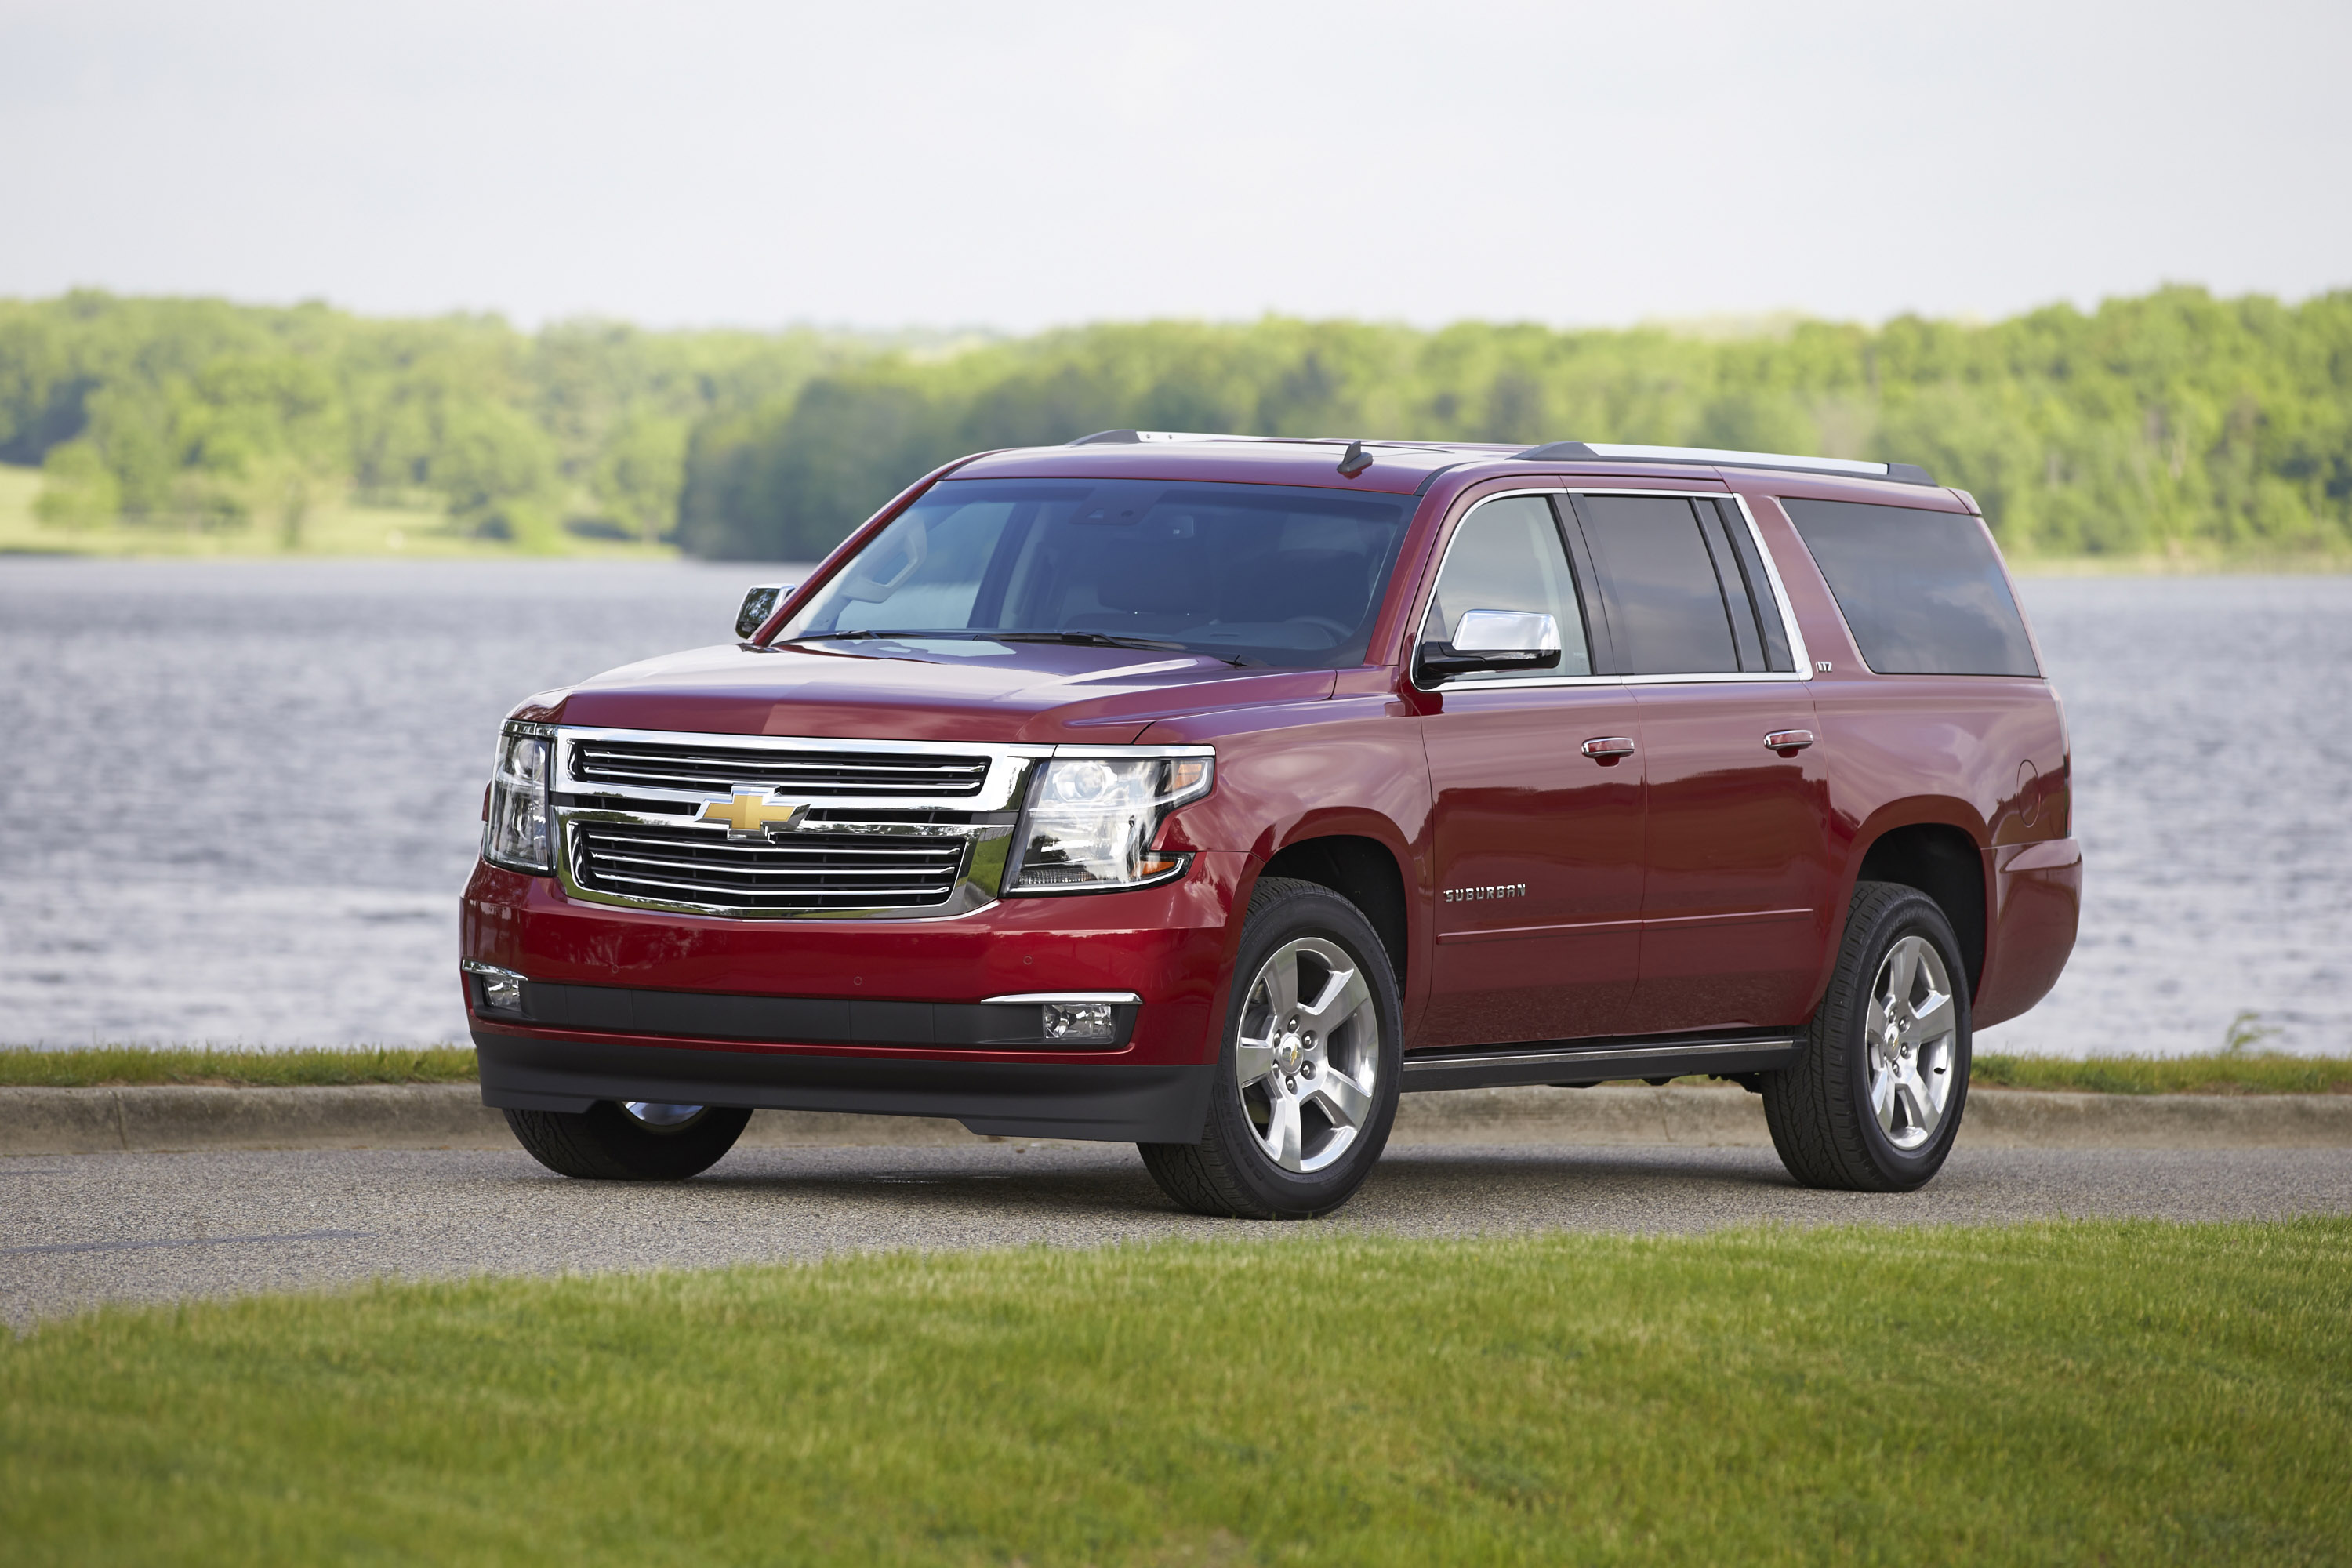 2015 Chevrolet Suburban Review | Release Date, Price and Specs